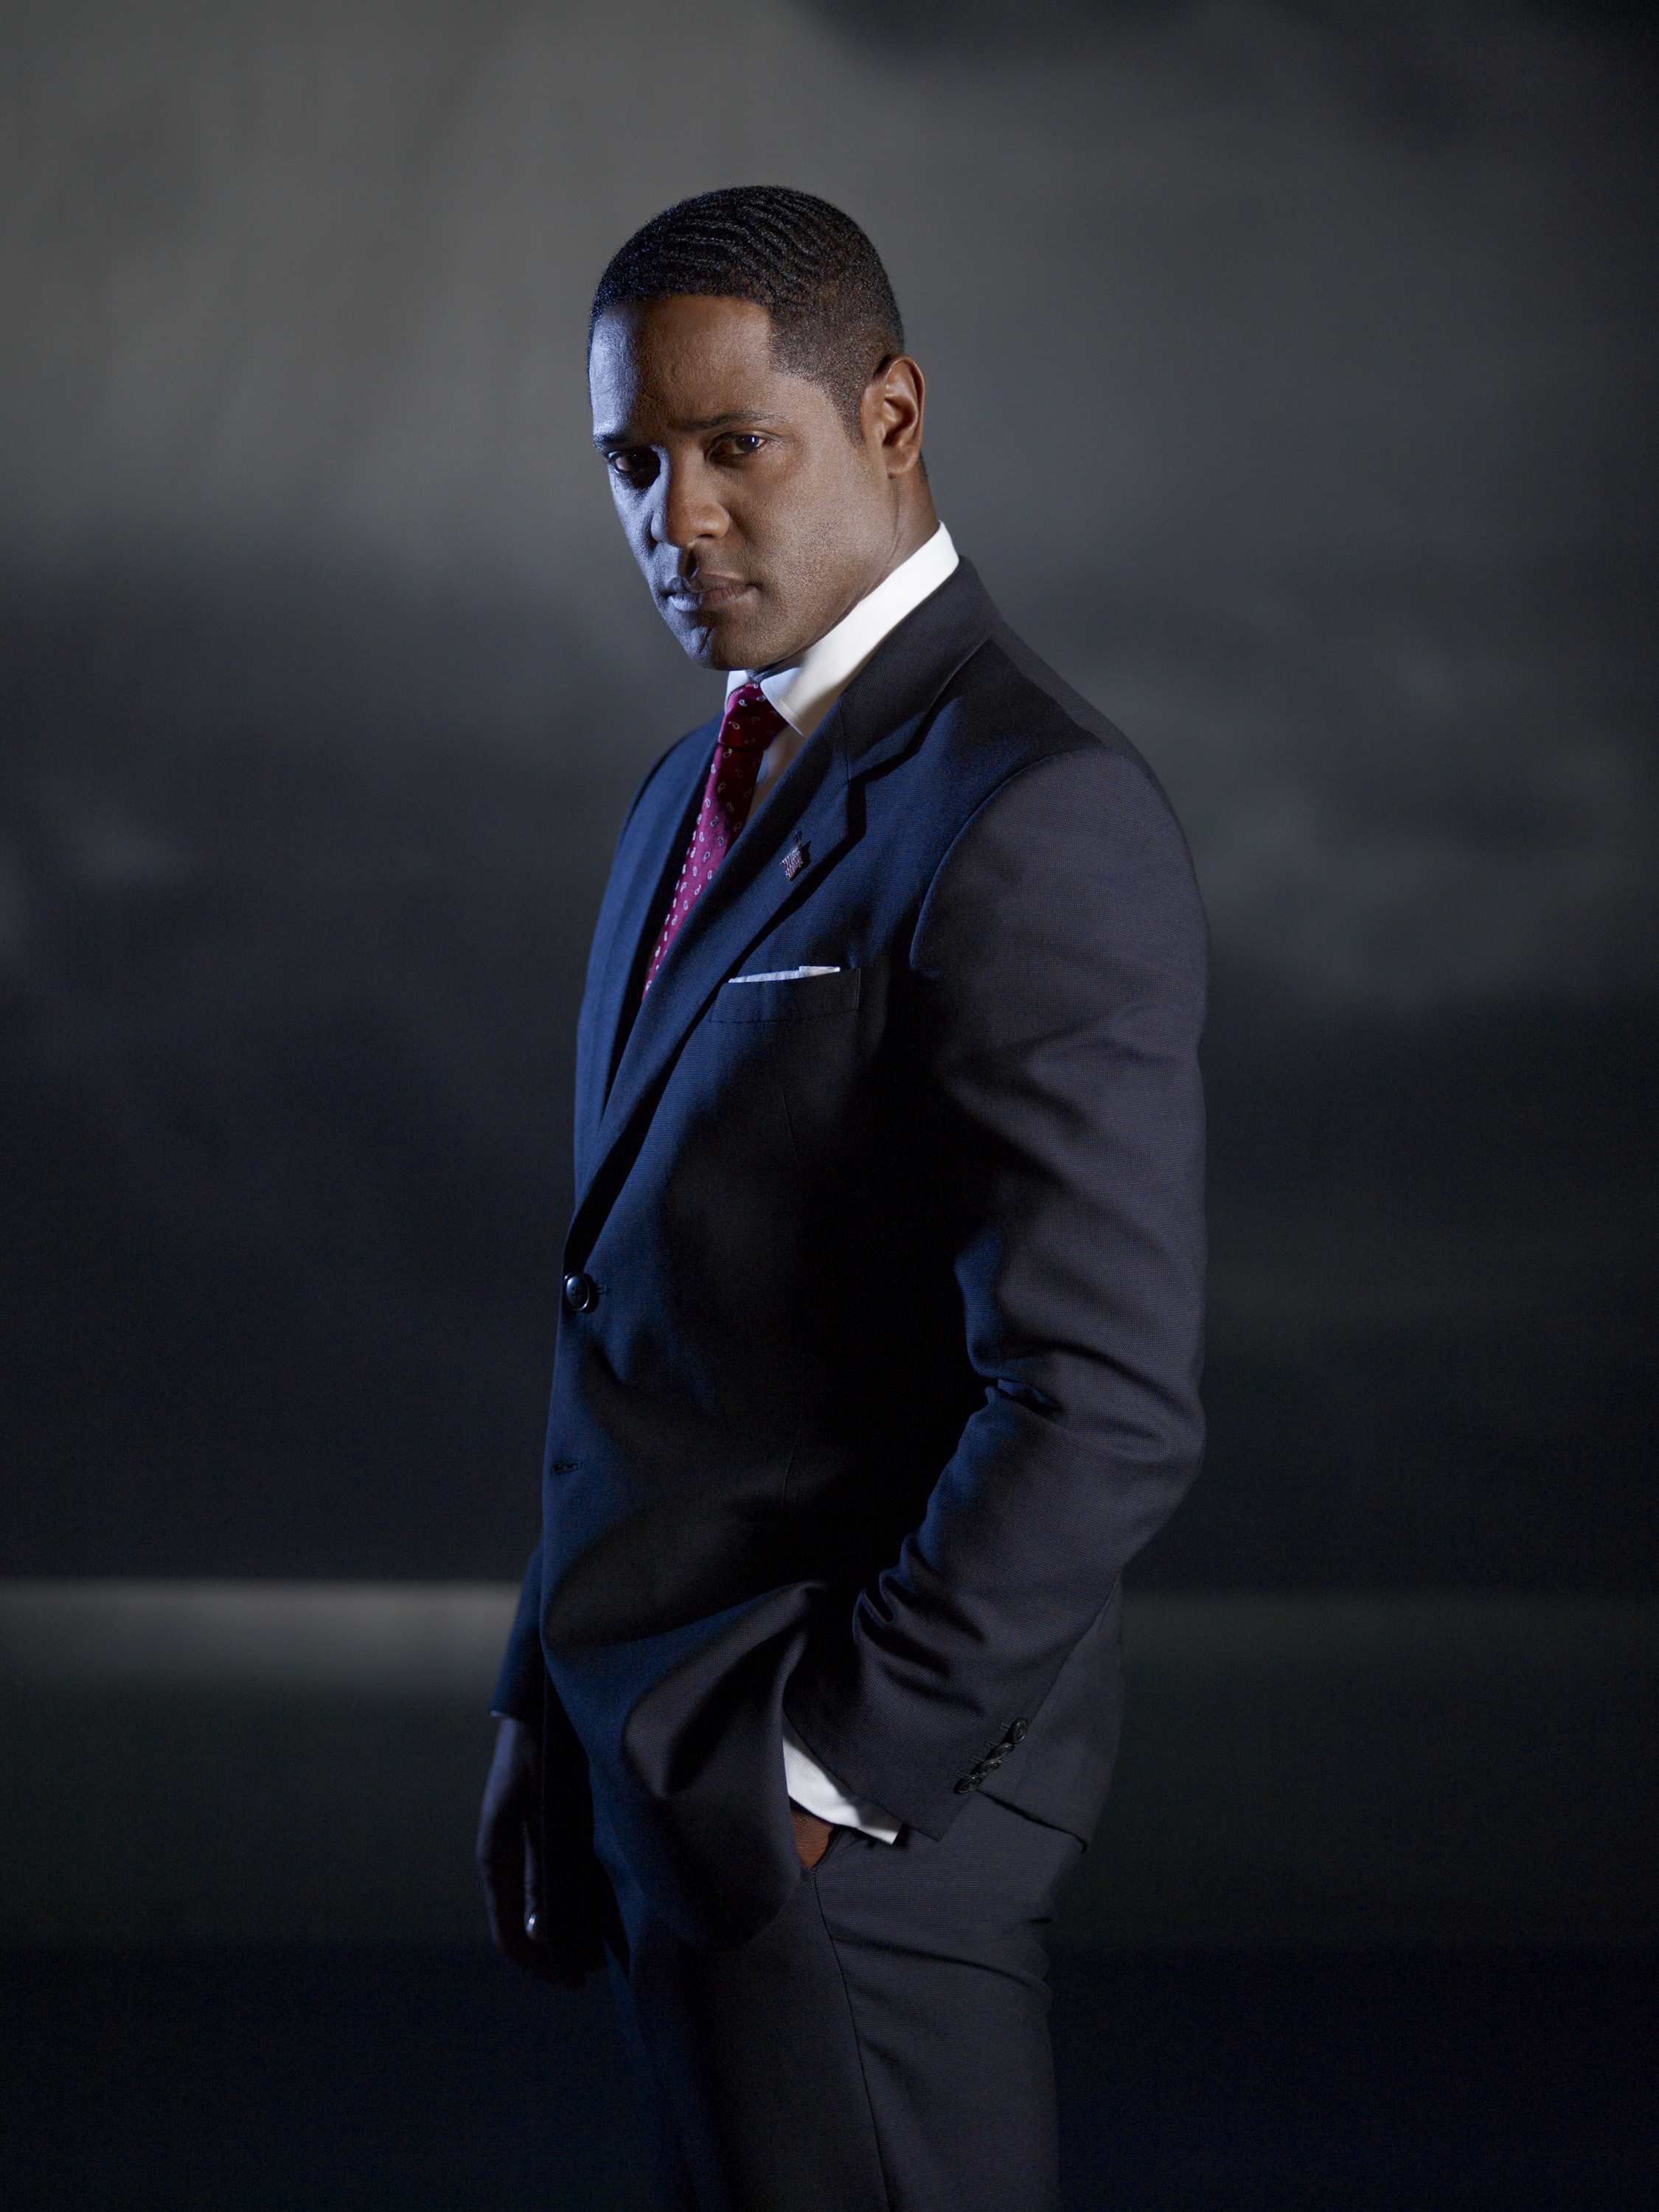 Blair Underwood photo, pics, wallpaper - photo #